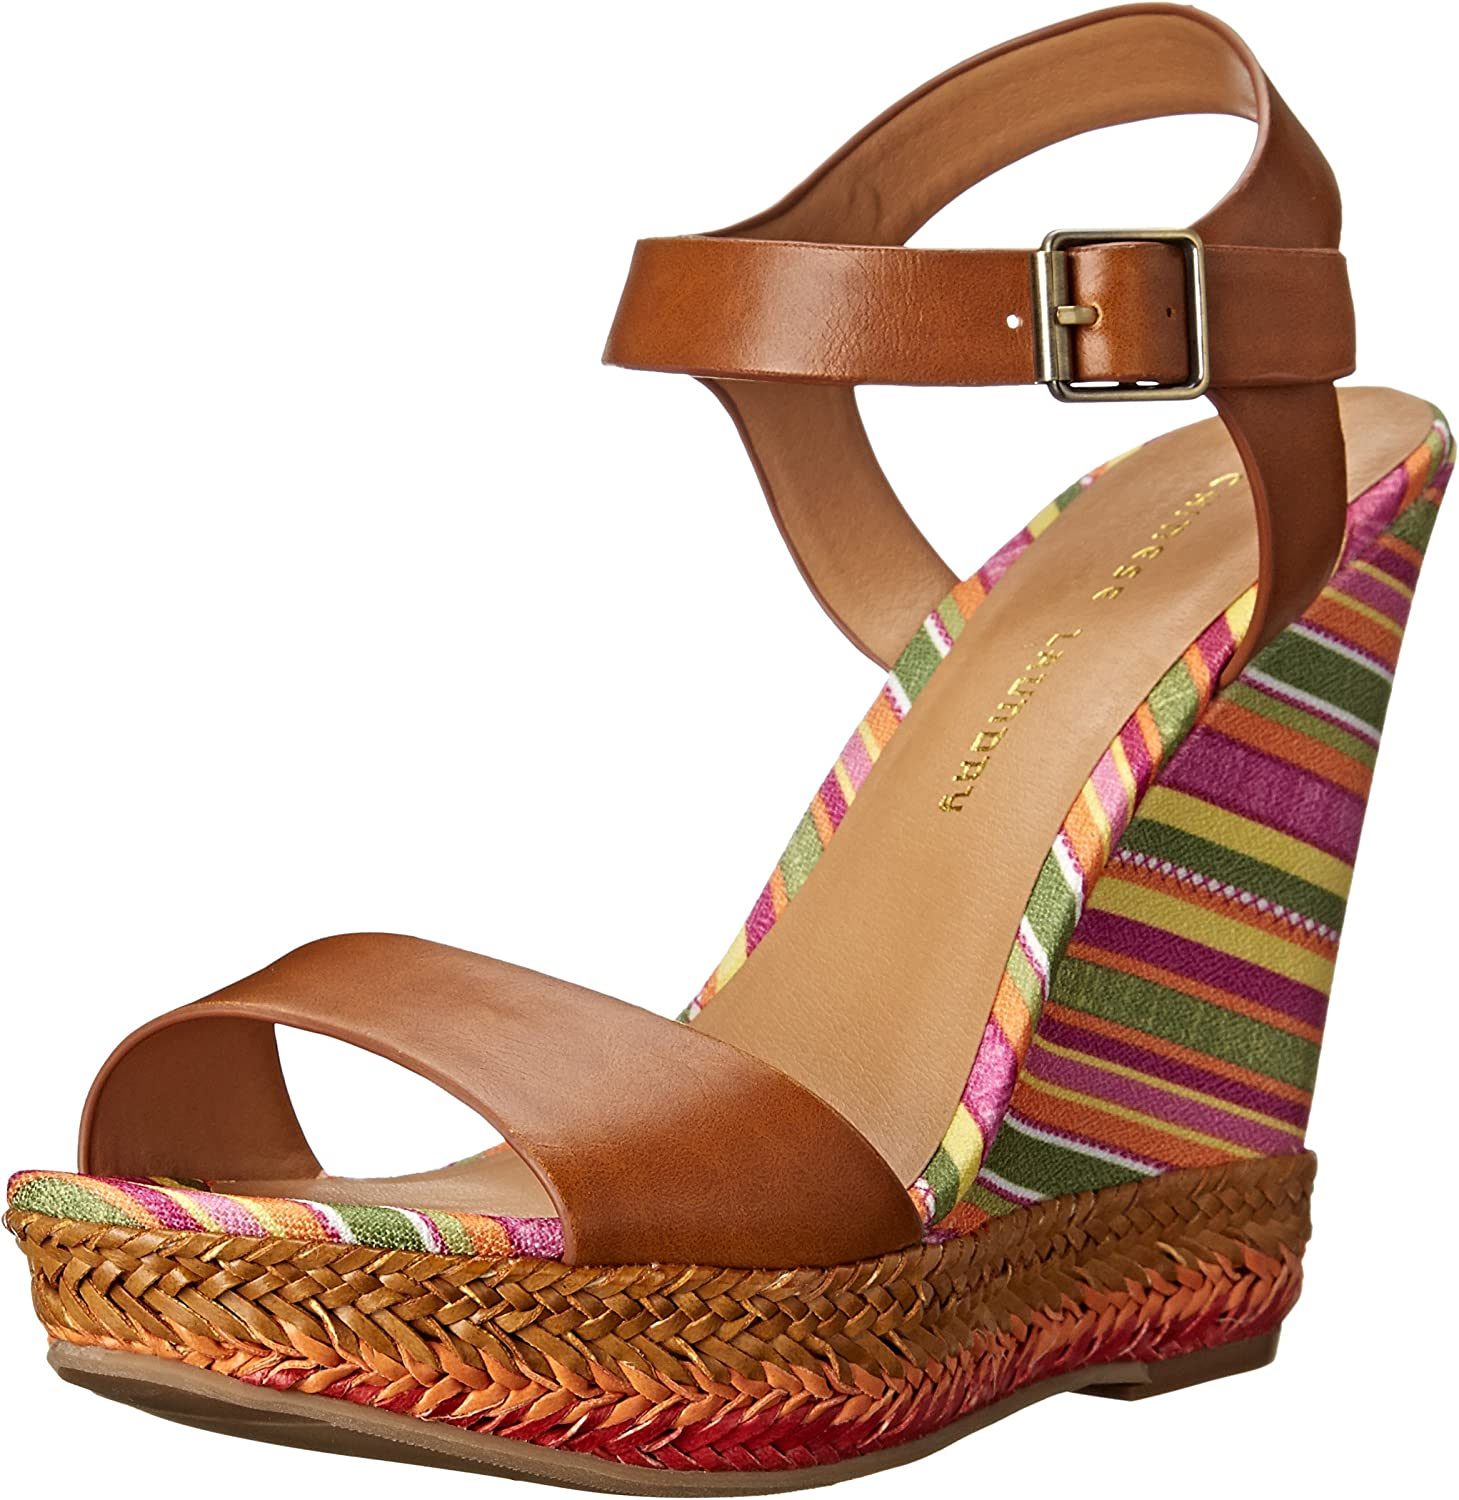 Chinese Laundry Mahalo Wedge Sandal Striped Espadrille Wedge Sandal